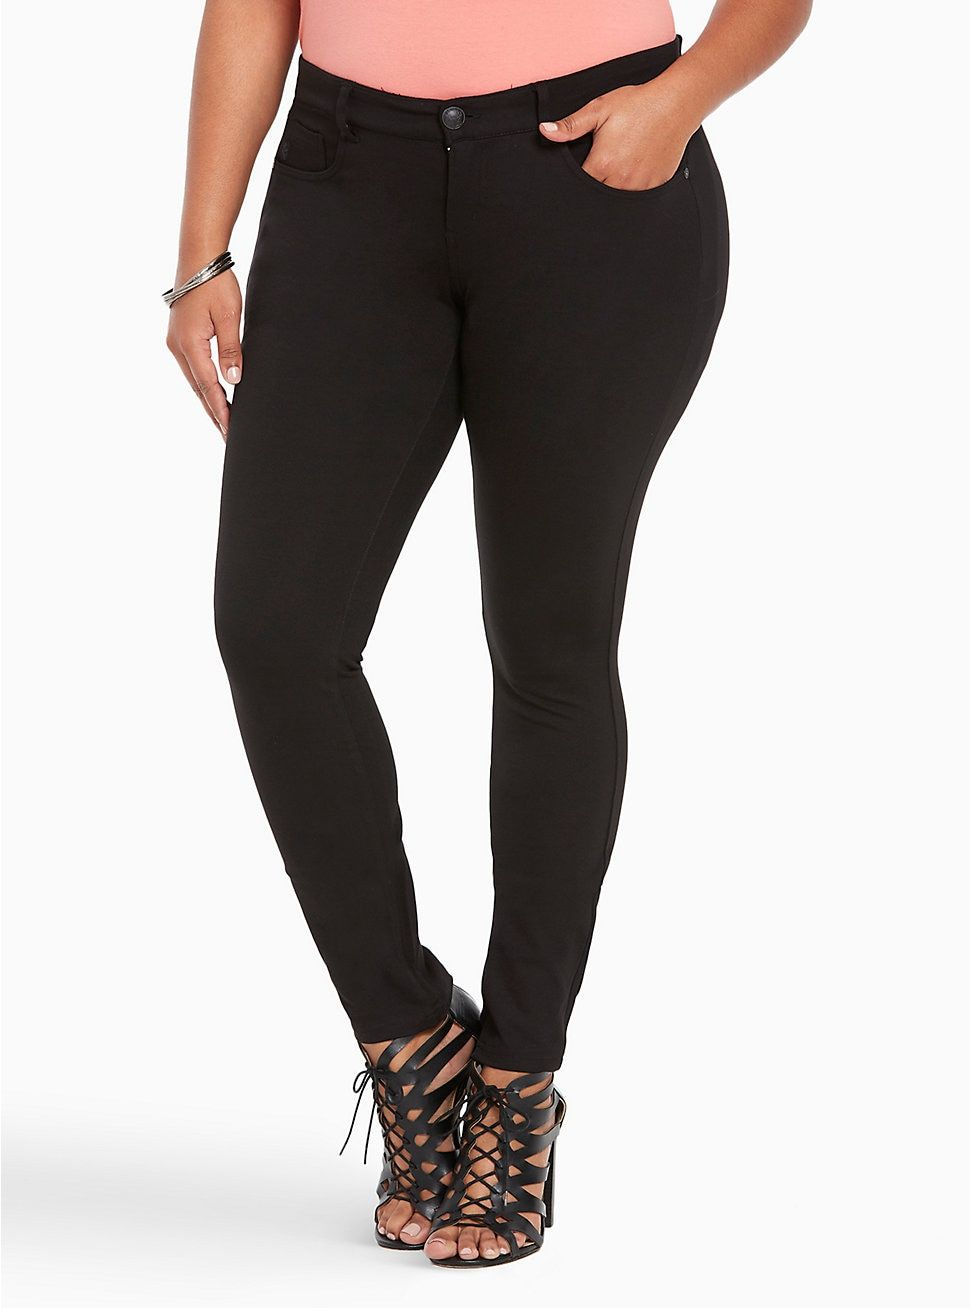 da20af319d0 Plus Size Studio Ponte Stretch Skinny Pant - Black